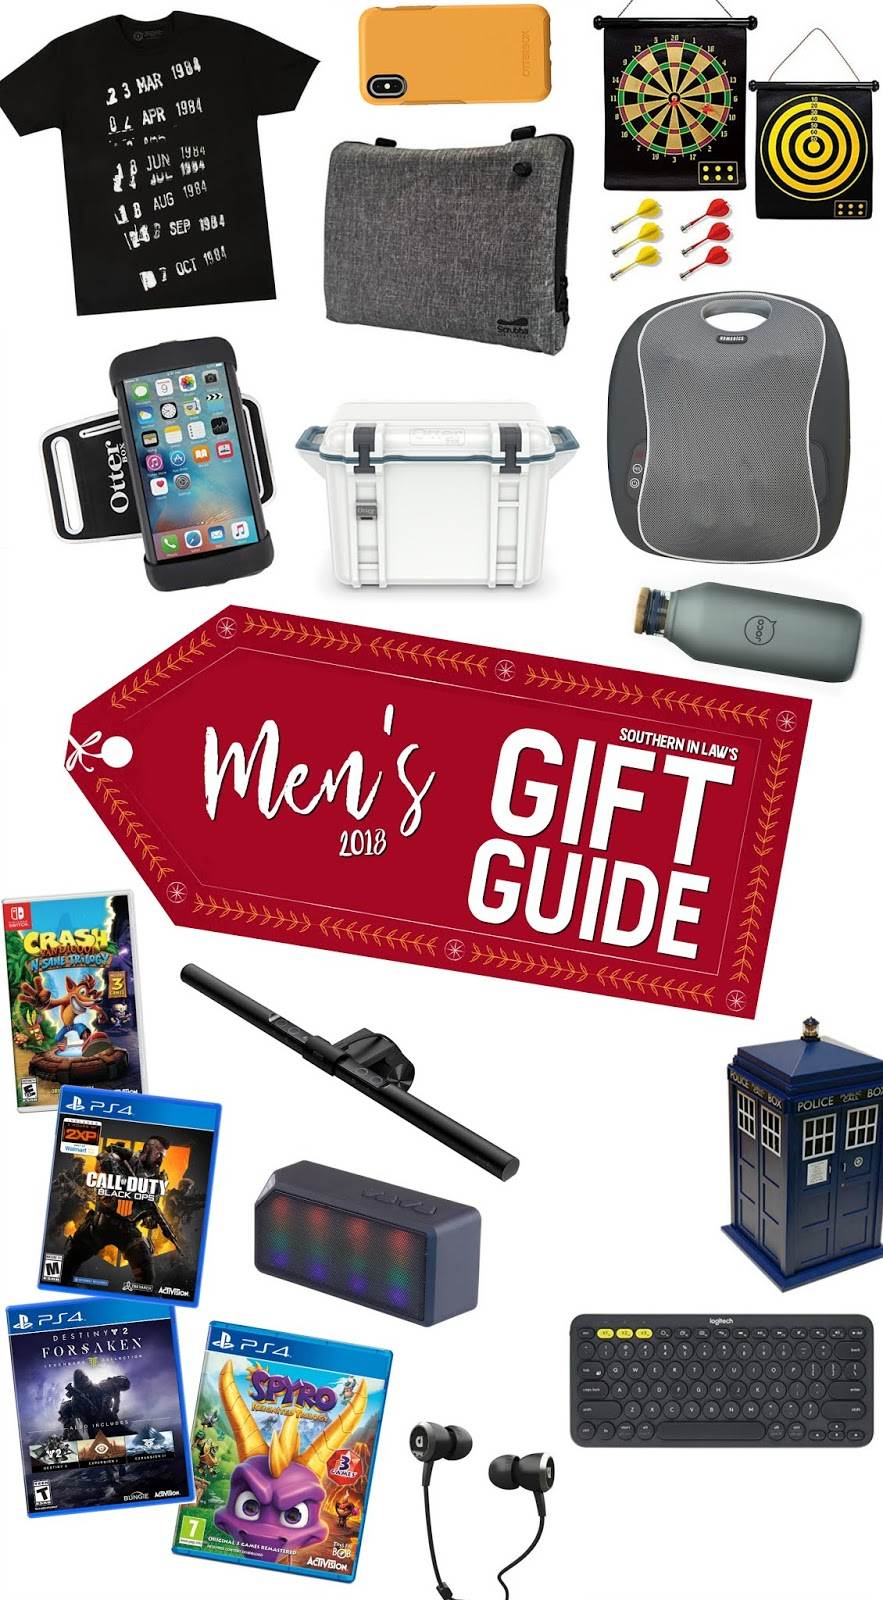 Southern In Law: The Best Christmas Gifts for Men This Year